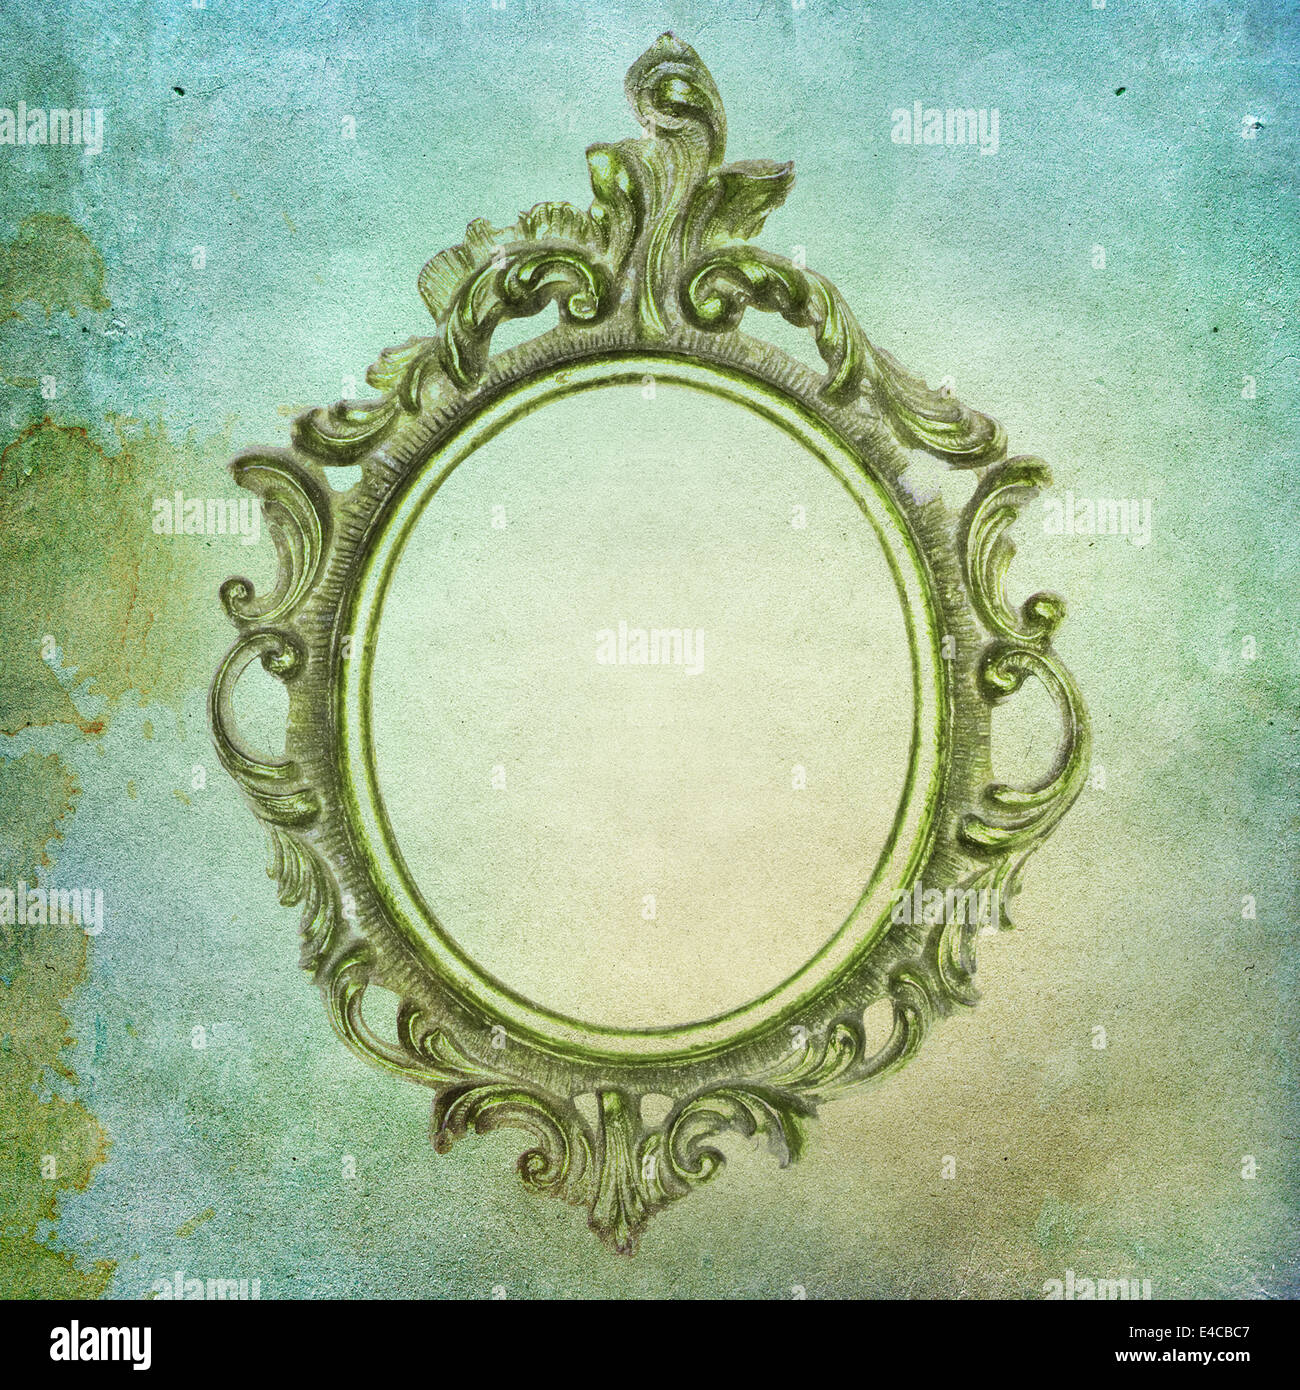 Vintage shabby chic background with frame Stock Photo: 71572487 - Alamy